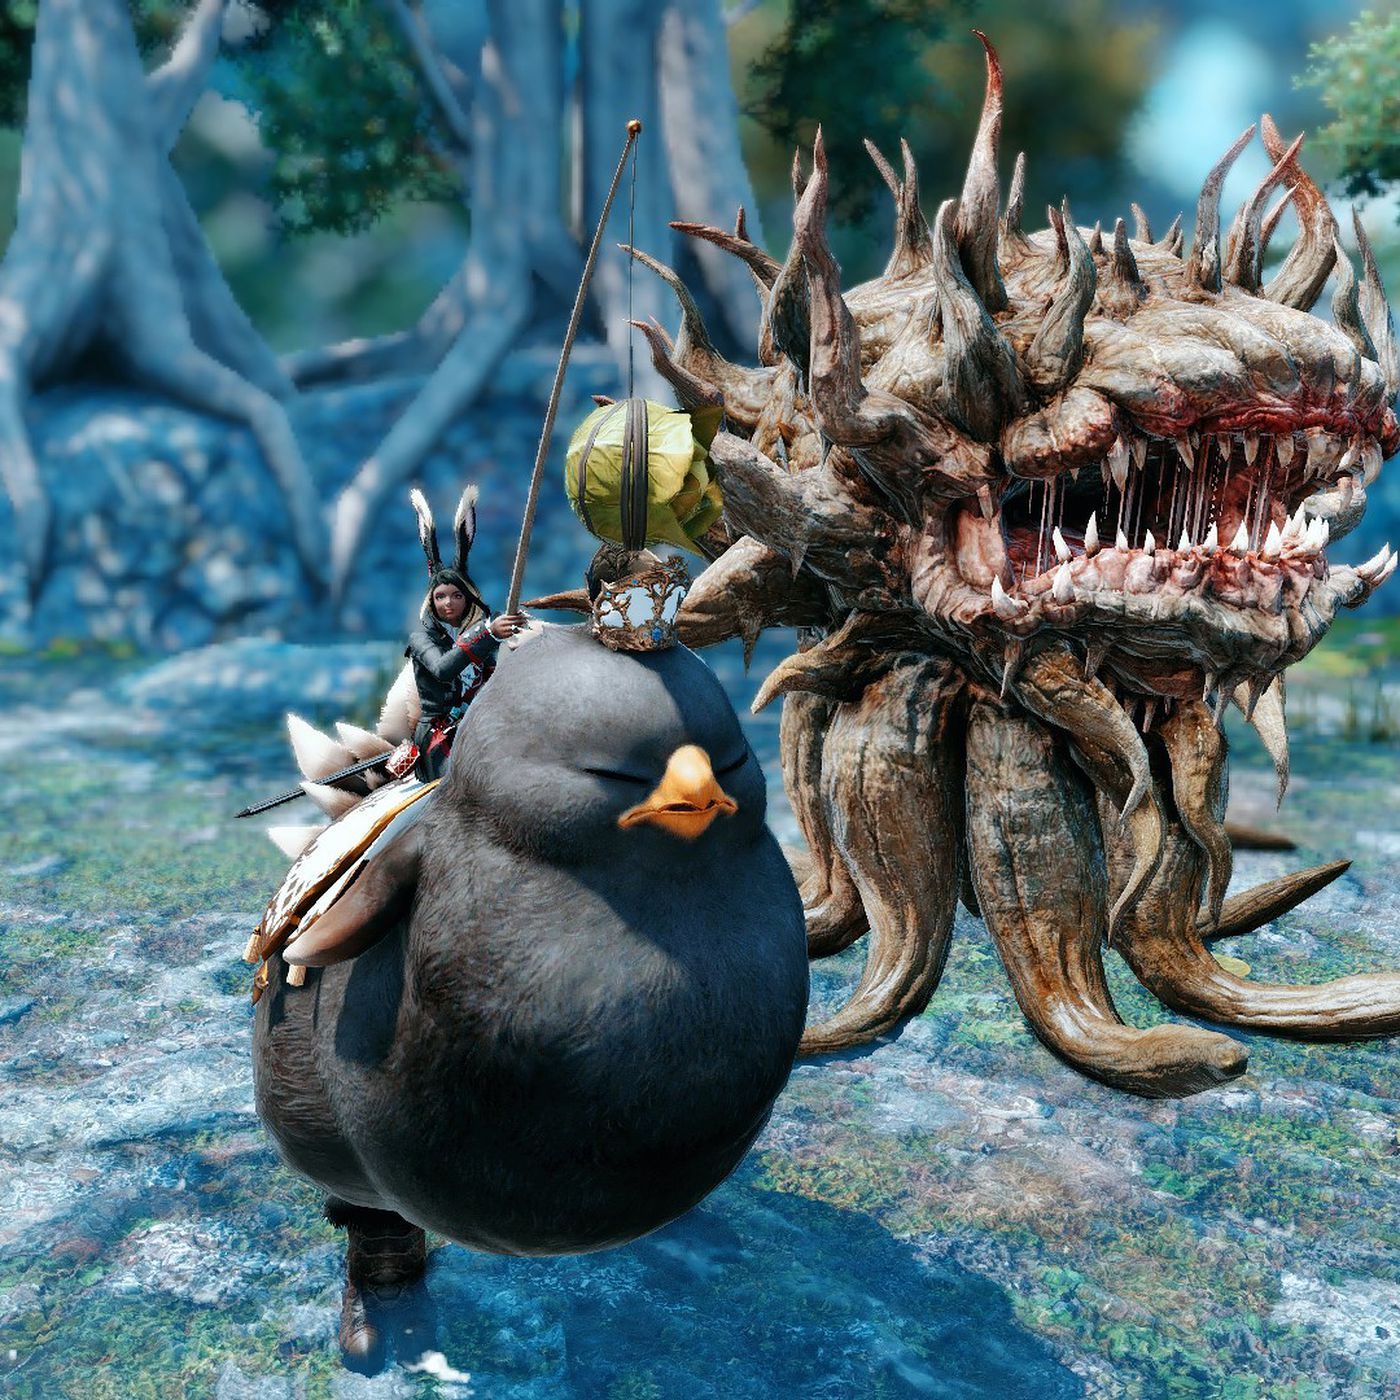 Chinese Final Fantasy 14 players are turning KFC into a new